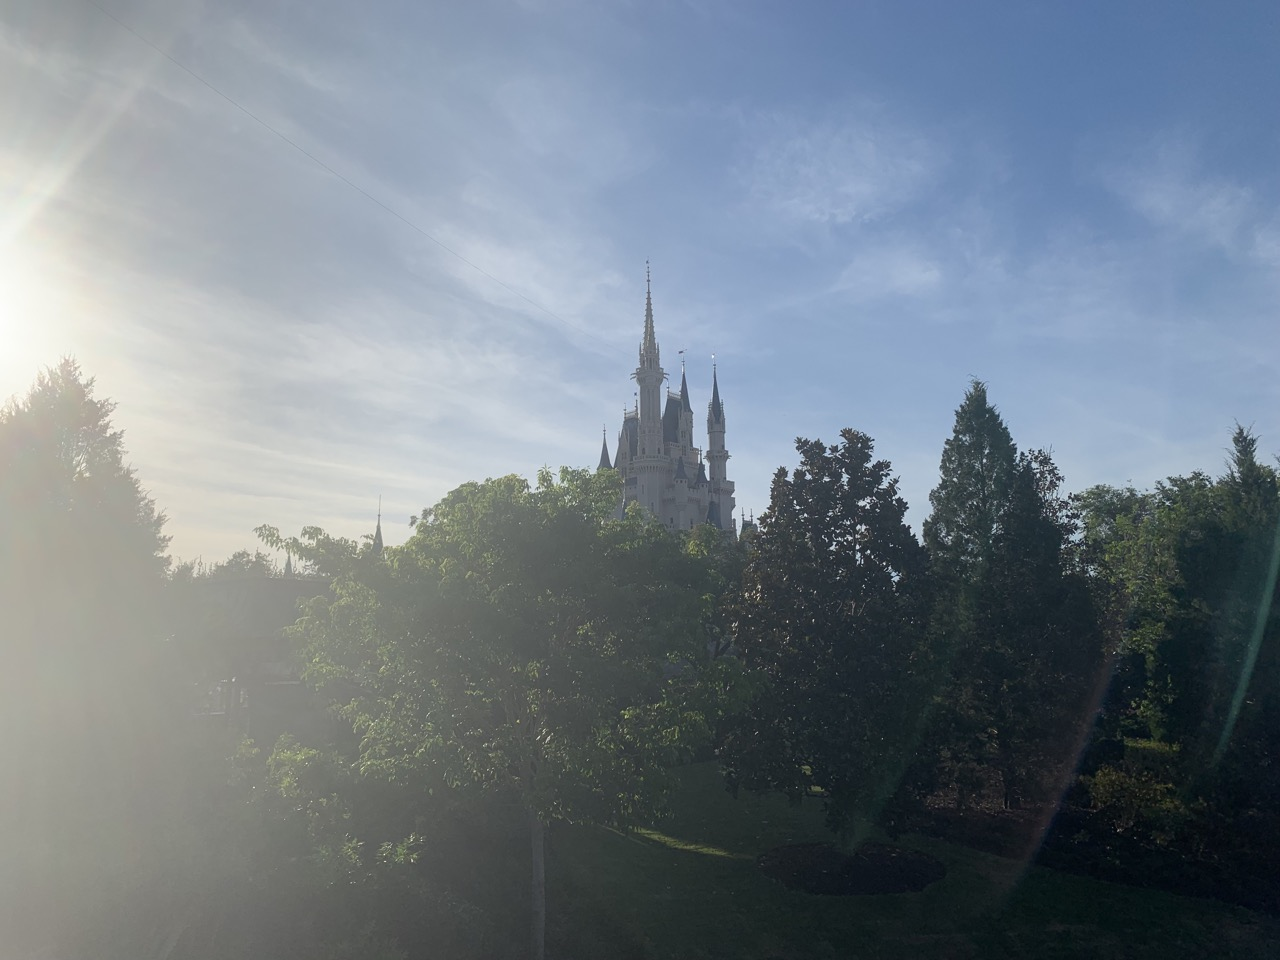 disney world trip report early summer 2019 day five 59 view.jpeg